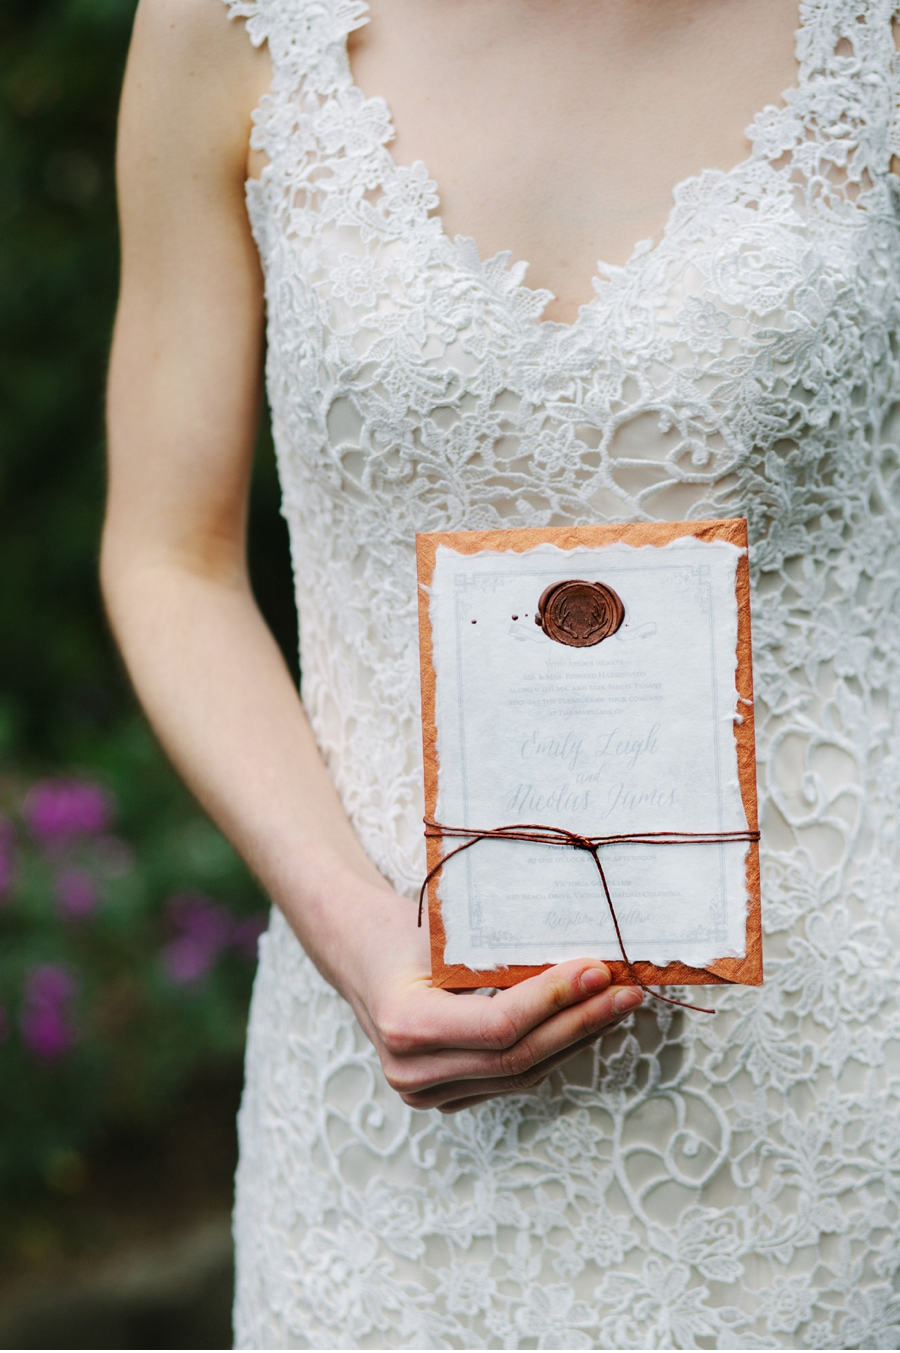 Bride-with-Handmade-Wedding-Invitation